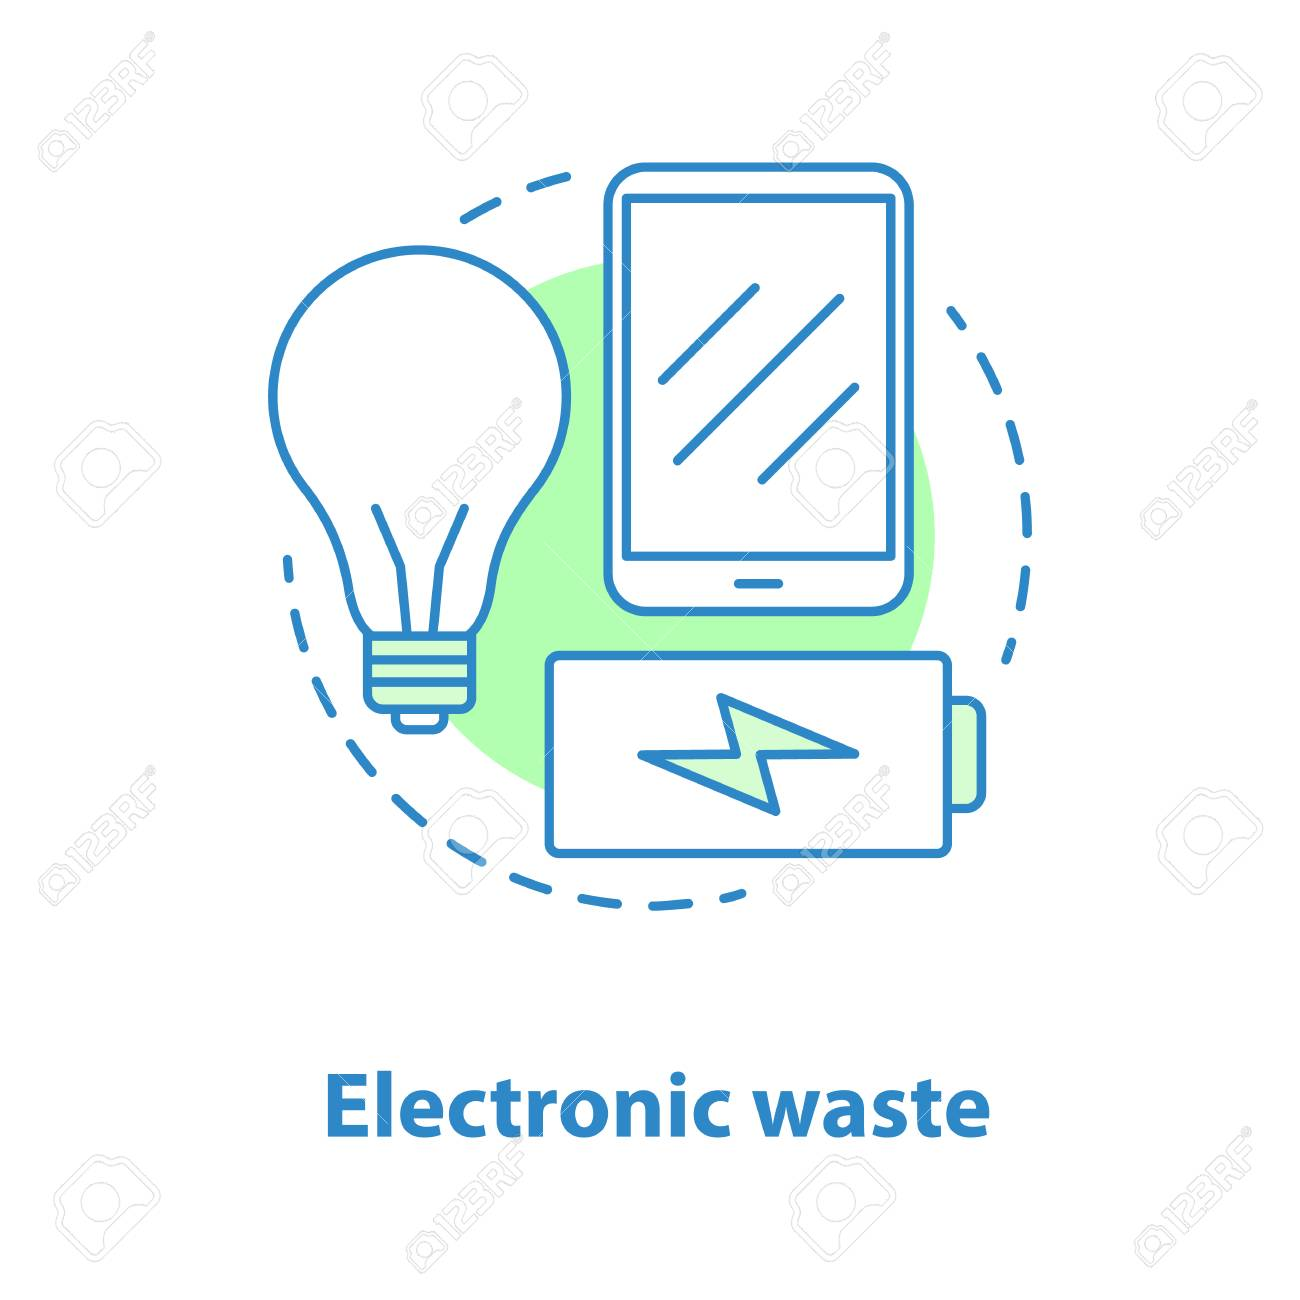 Electronic Waste Concept Icon Weee Idea Thin Line Illustration